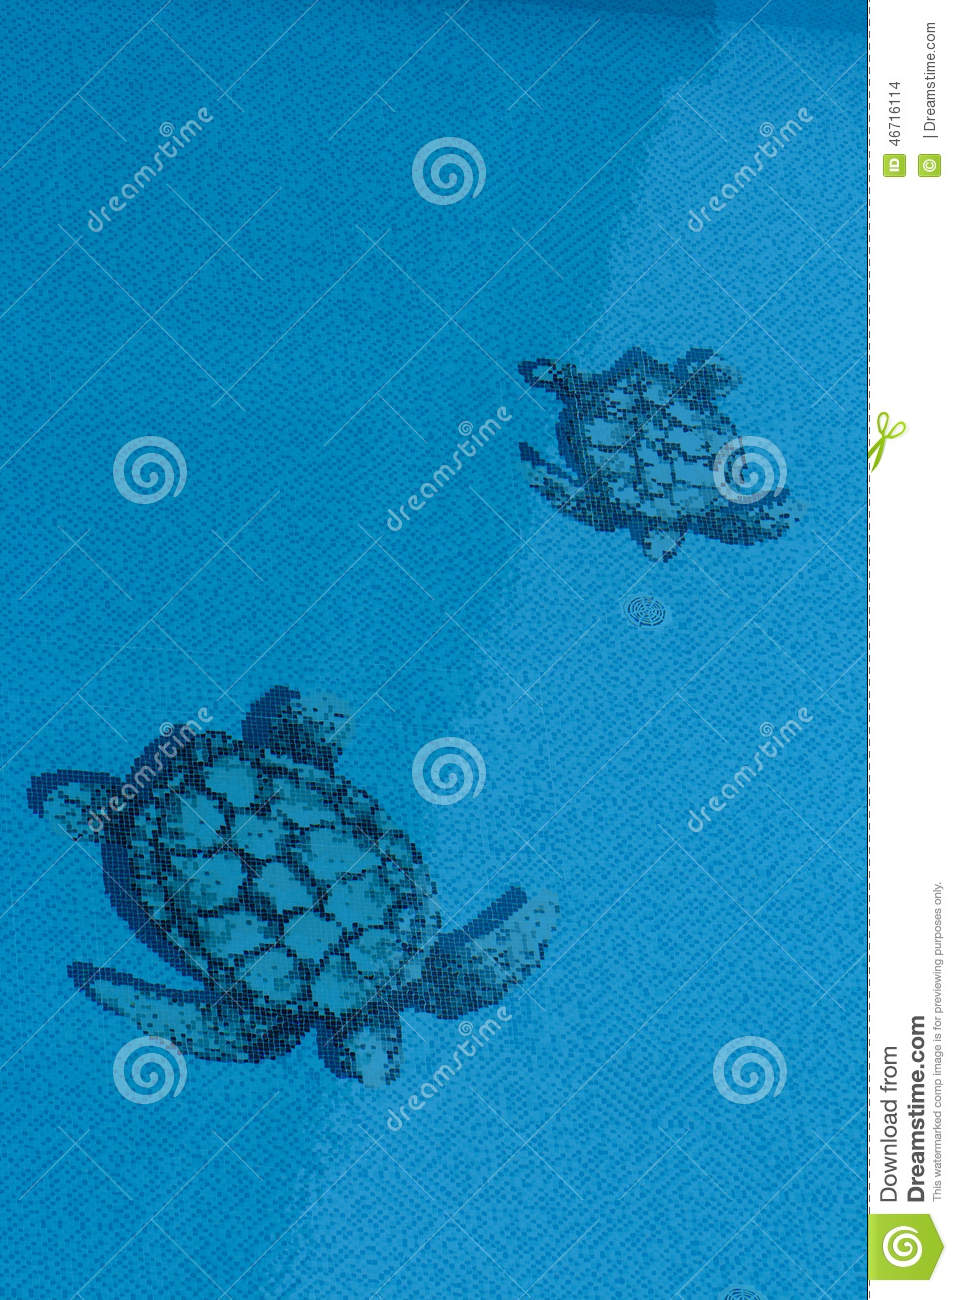 turtle texture in pool stock illustration illustration of party 46716114